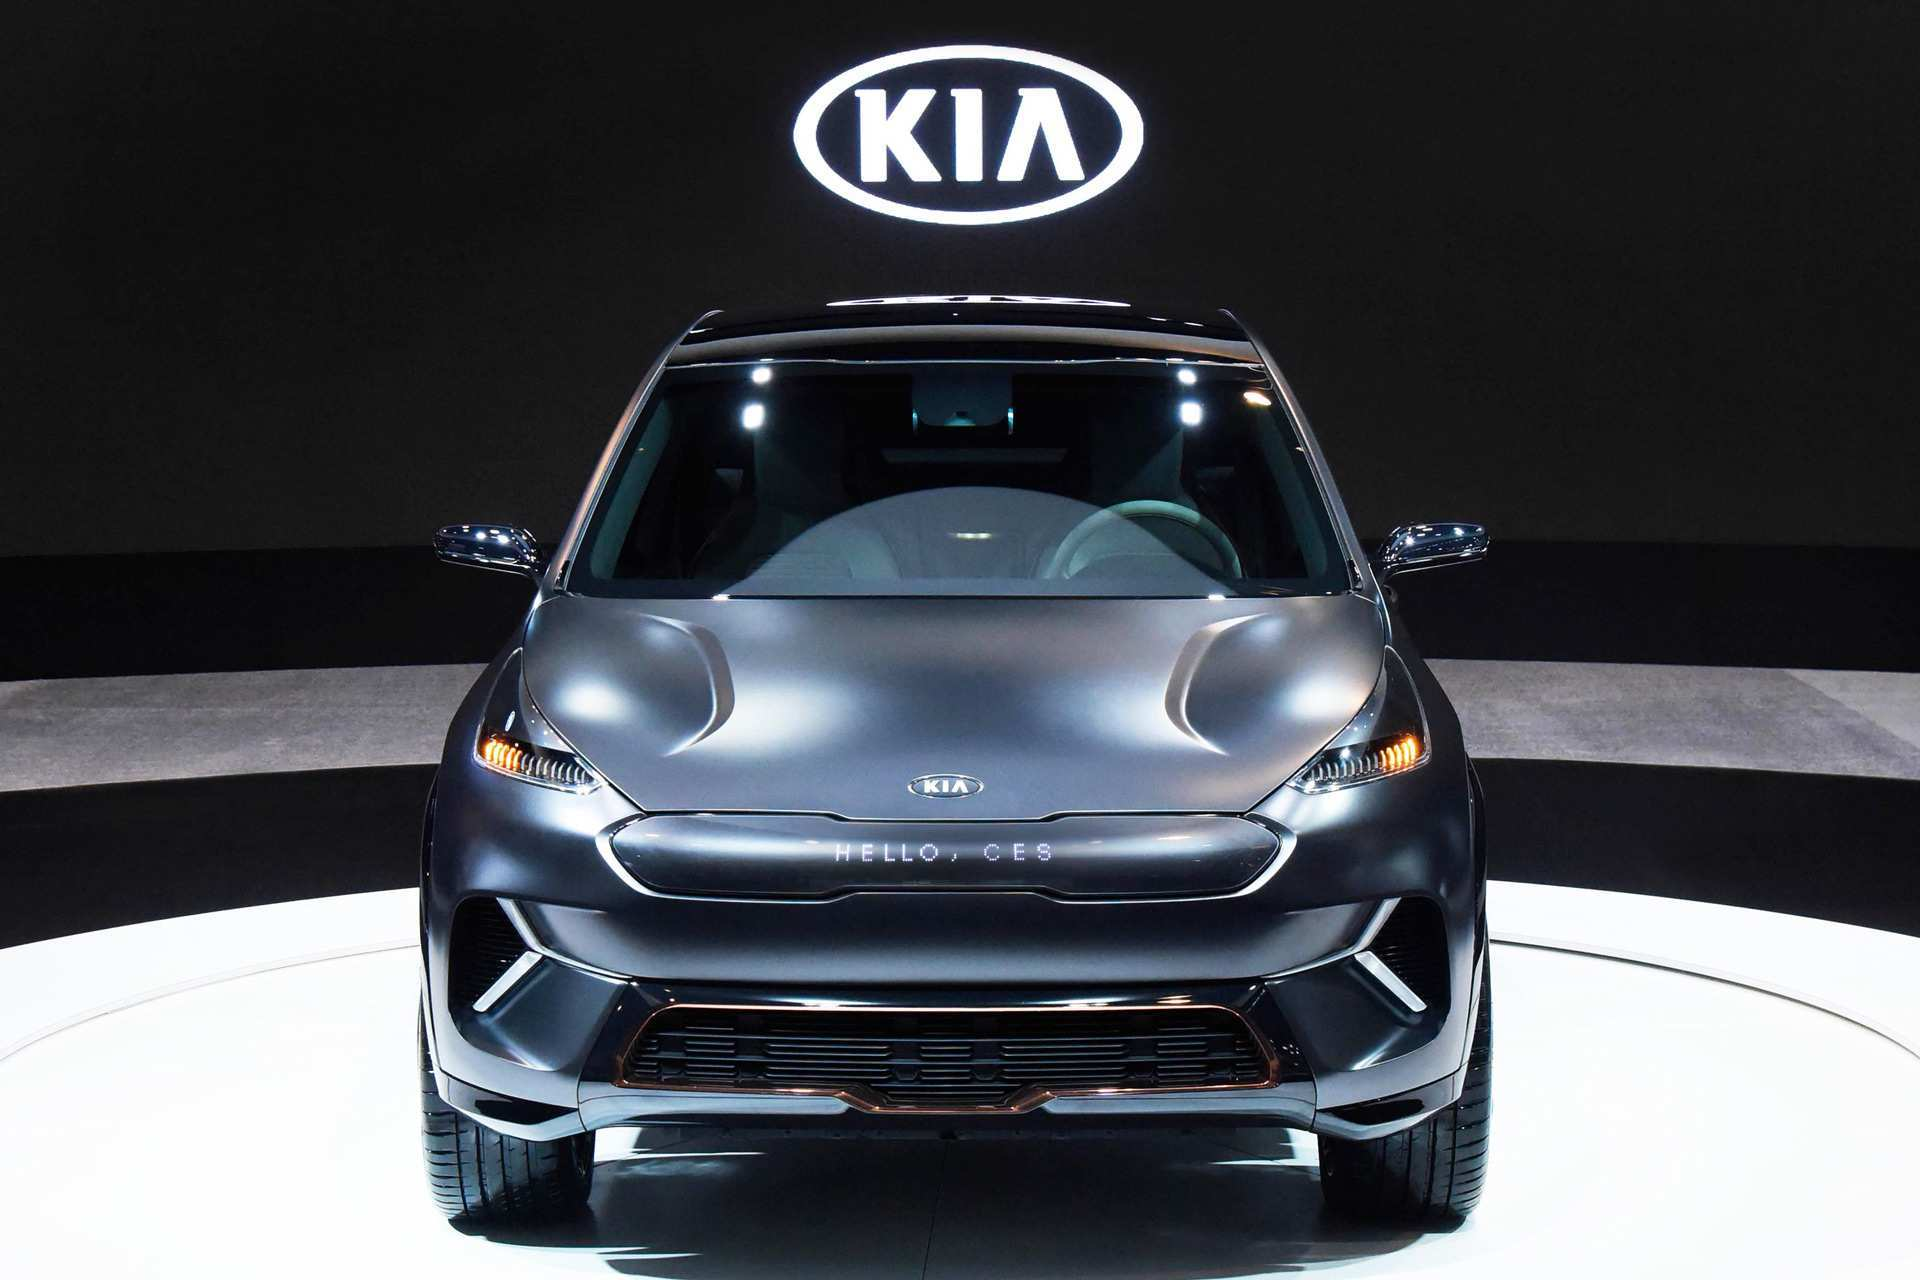 26 Gallery of Niro Kia 2020 New Concept for Niro Kia 2020